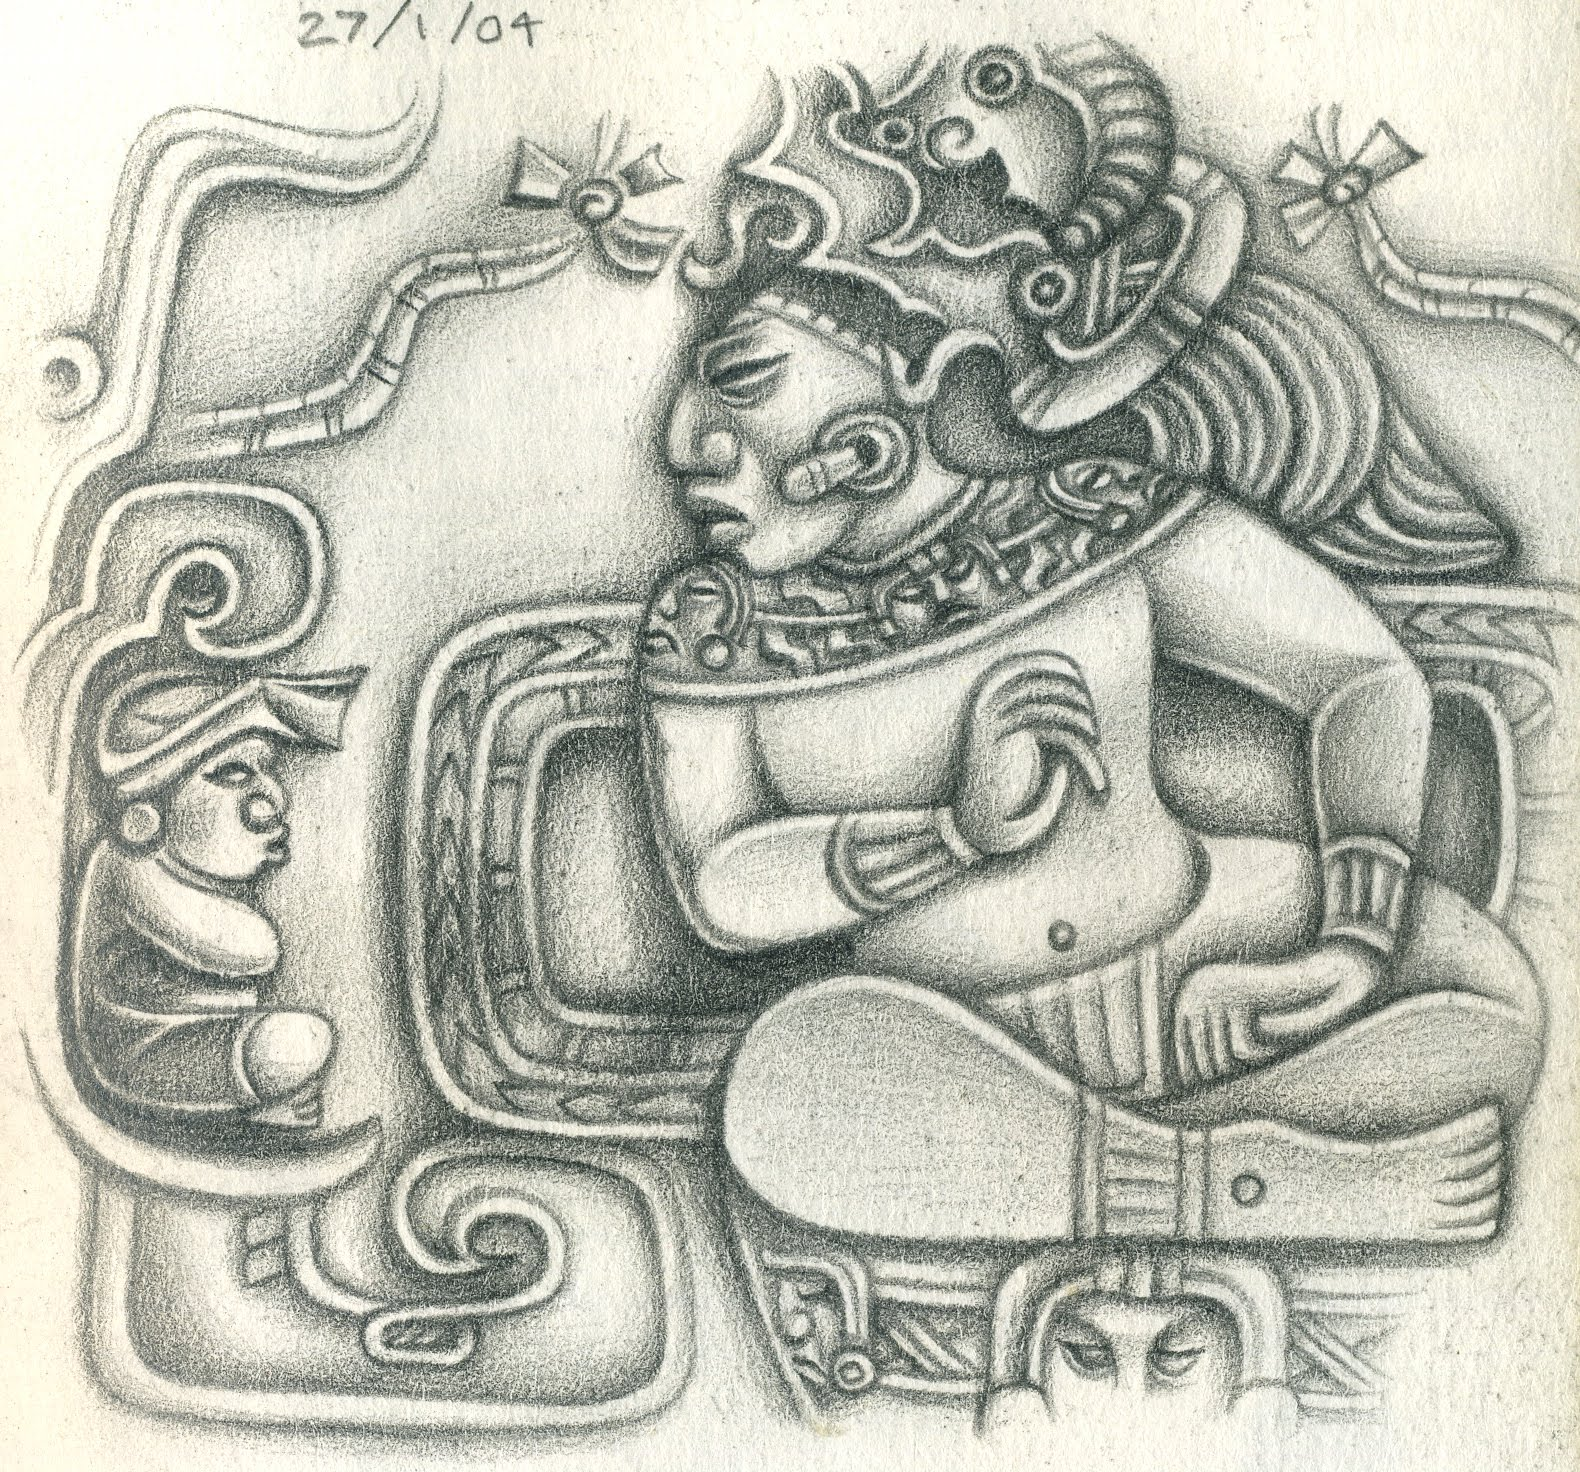 ... Martin Luther King Jr Color together with Mayan Art Drawings. on king